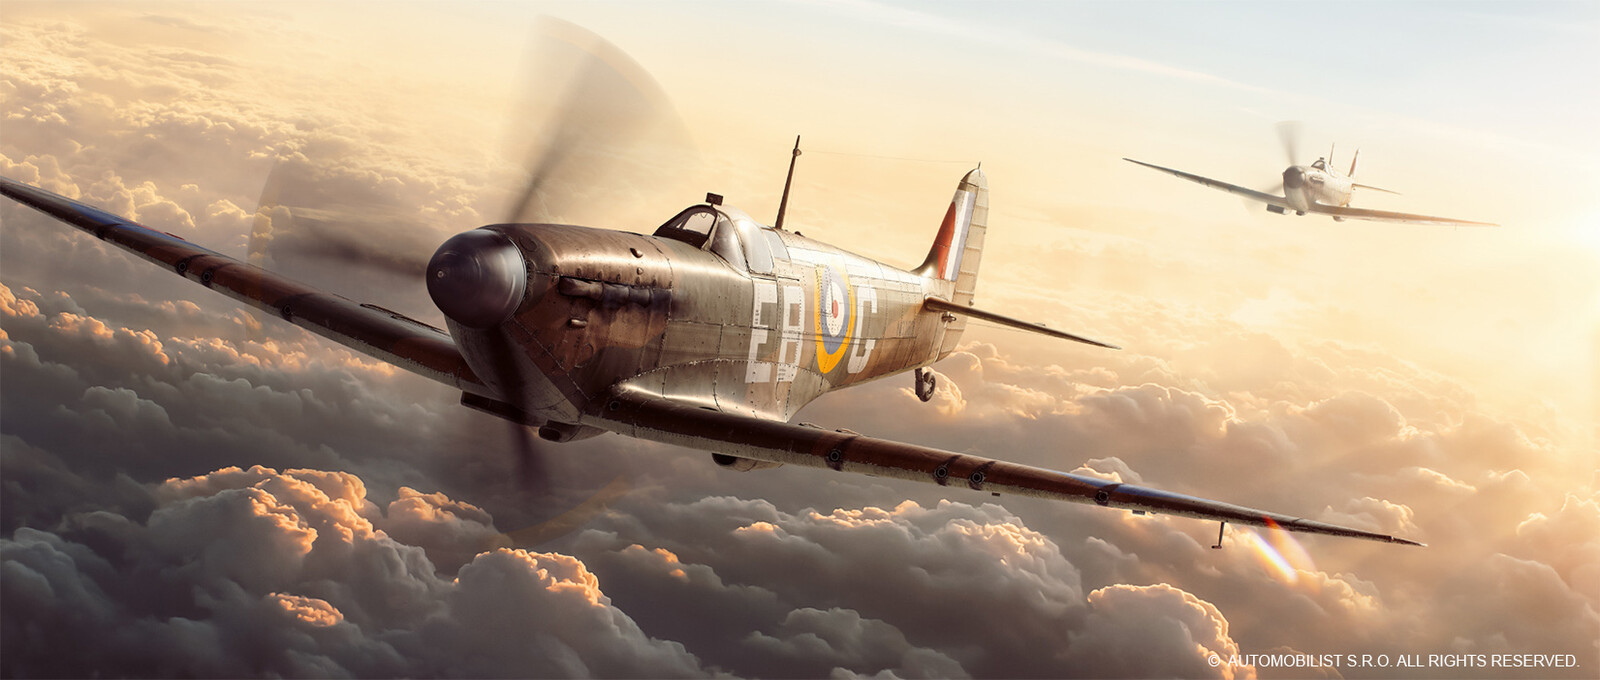 Lost A Leader, Gained An Ace Artwork - Spitfire and Huricanne modelling